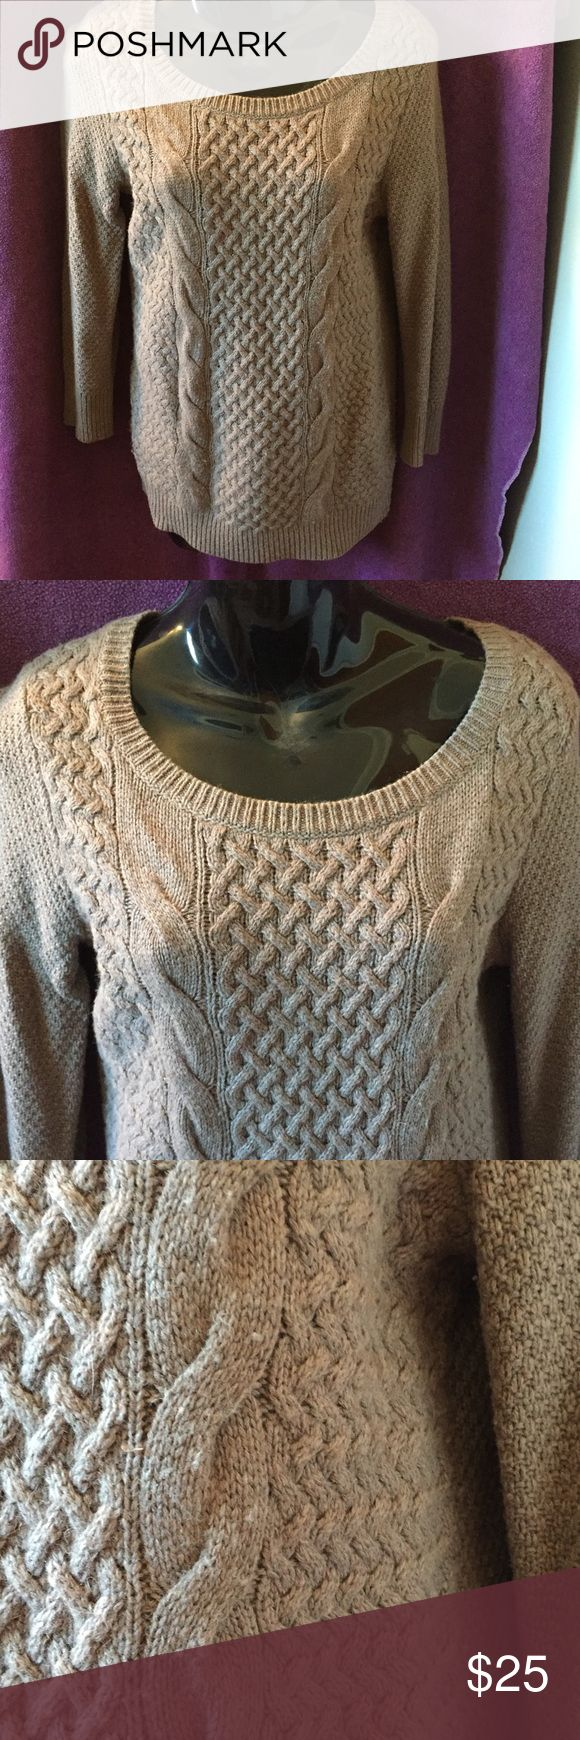 Ann Taylor Loft light brown (sable) sweater Very nice woo blend Ann Taylor Loft textured sweater. Beautiful sable color & almost tunic length. Very gently worn. Anne Taylor Loft Sweaters Crew & Scoop Necks